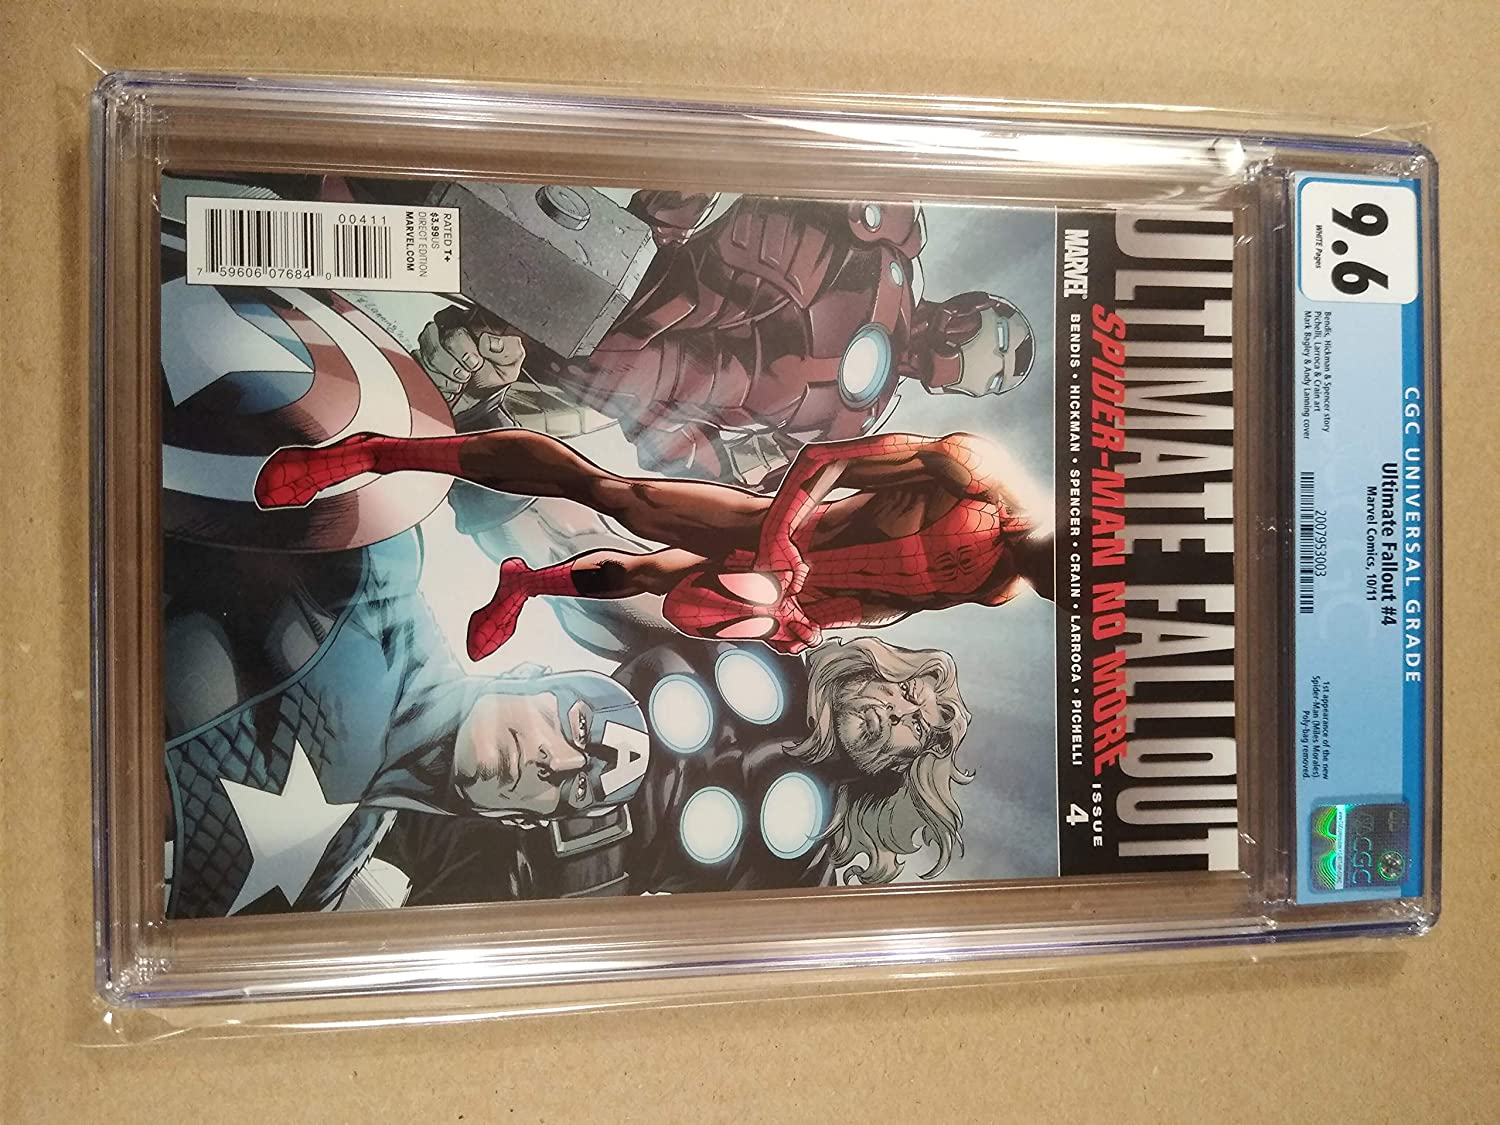 MILES MORALES FIRST SPIDER-MAN APPEARANCE ULTIMATE FALLOUT # 4  2ND MINT